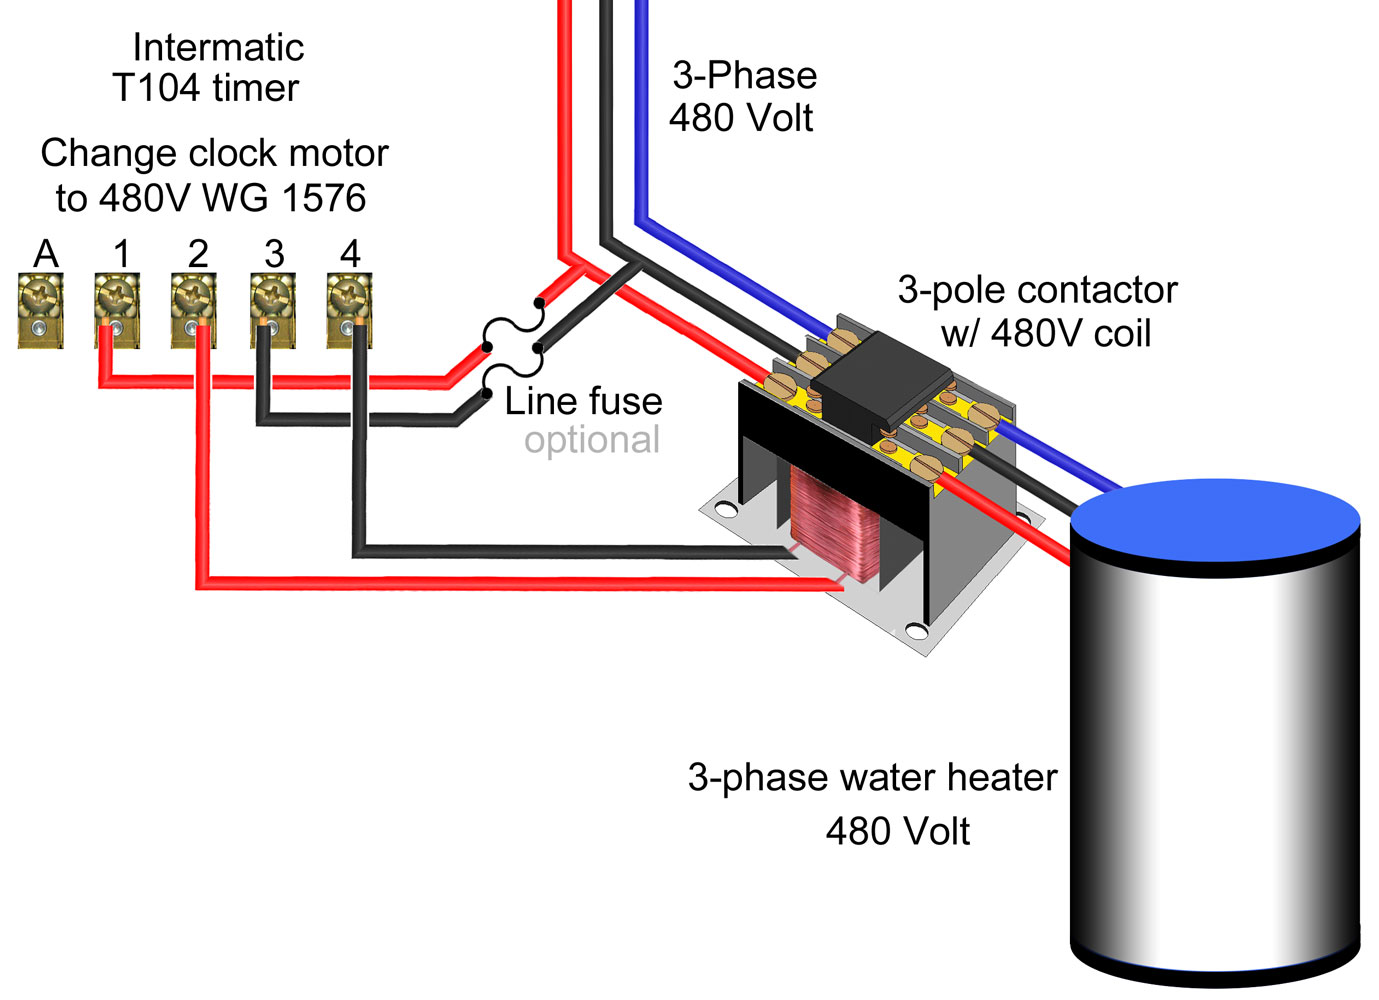 Simultaneous Water Heater Wiring likewise 480 Volt Wiring Diagram together with 3 Phase Power Monitoring further 112207600202 furthermore Water Pump Motor Wiring Diagram. on 3ph motor diagram